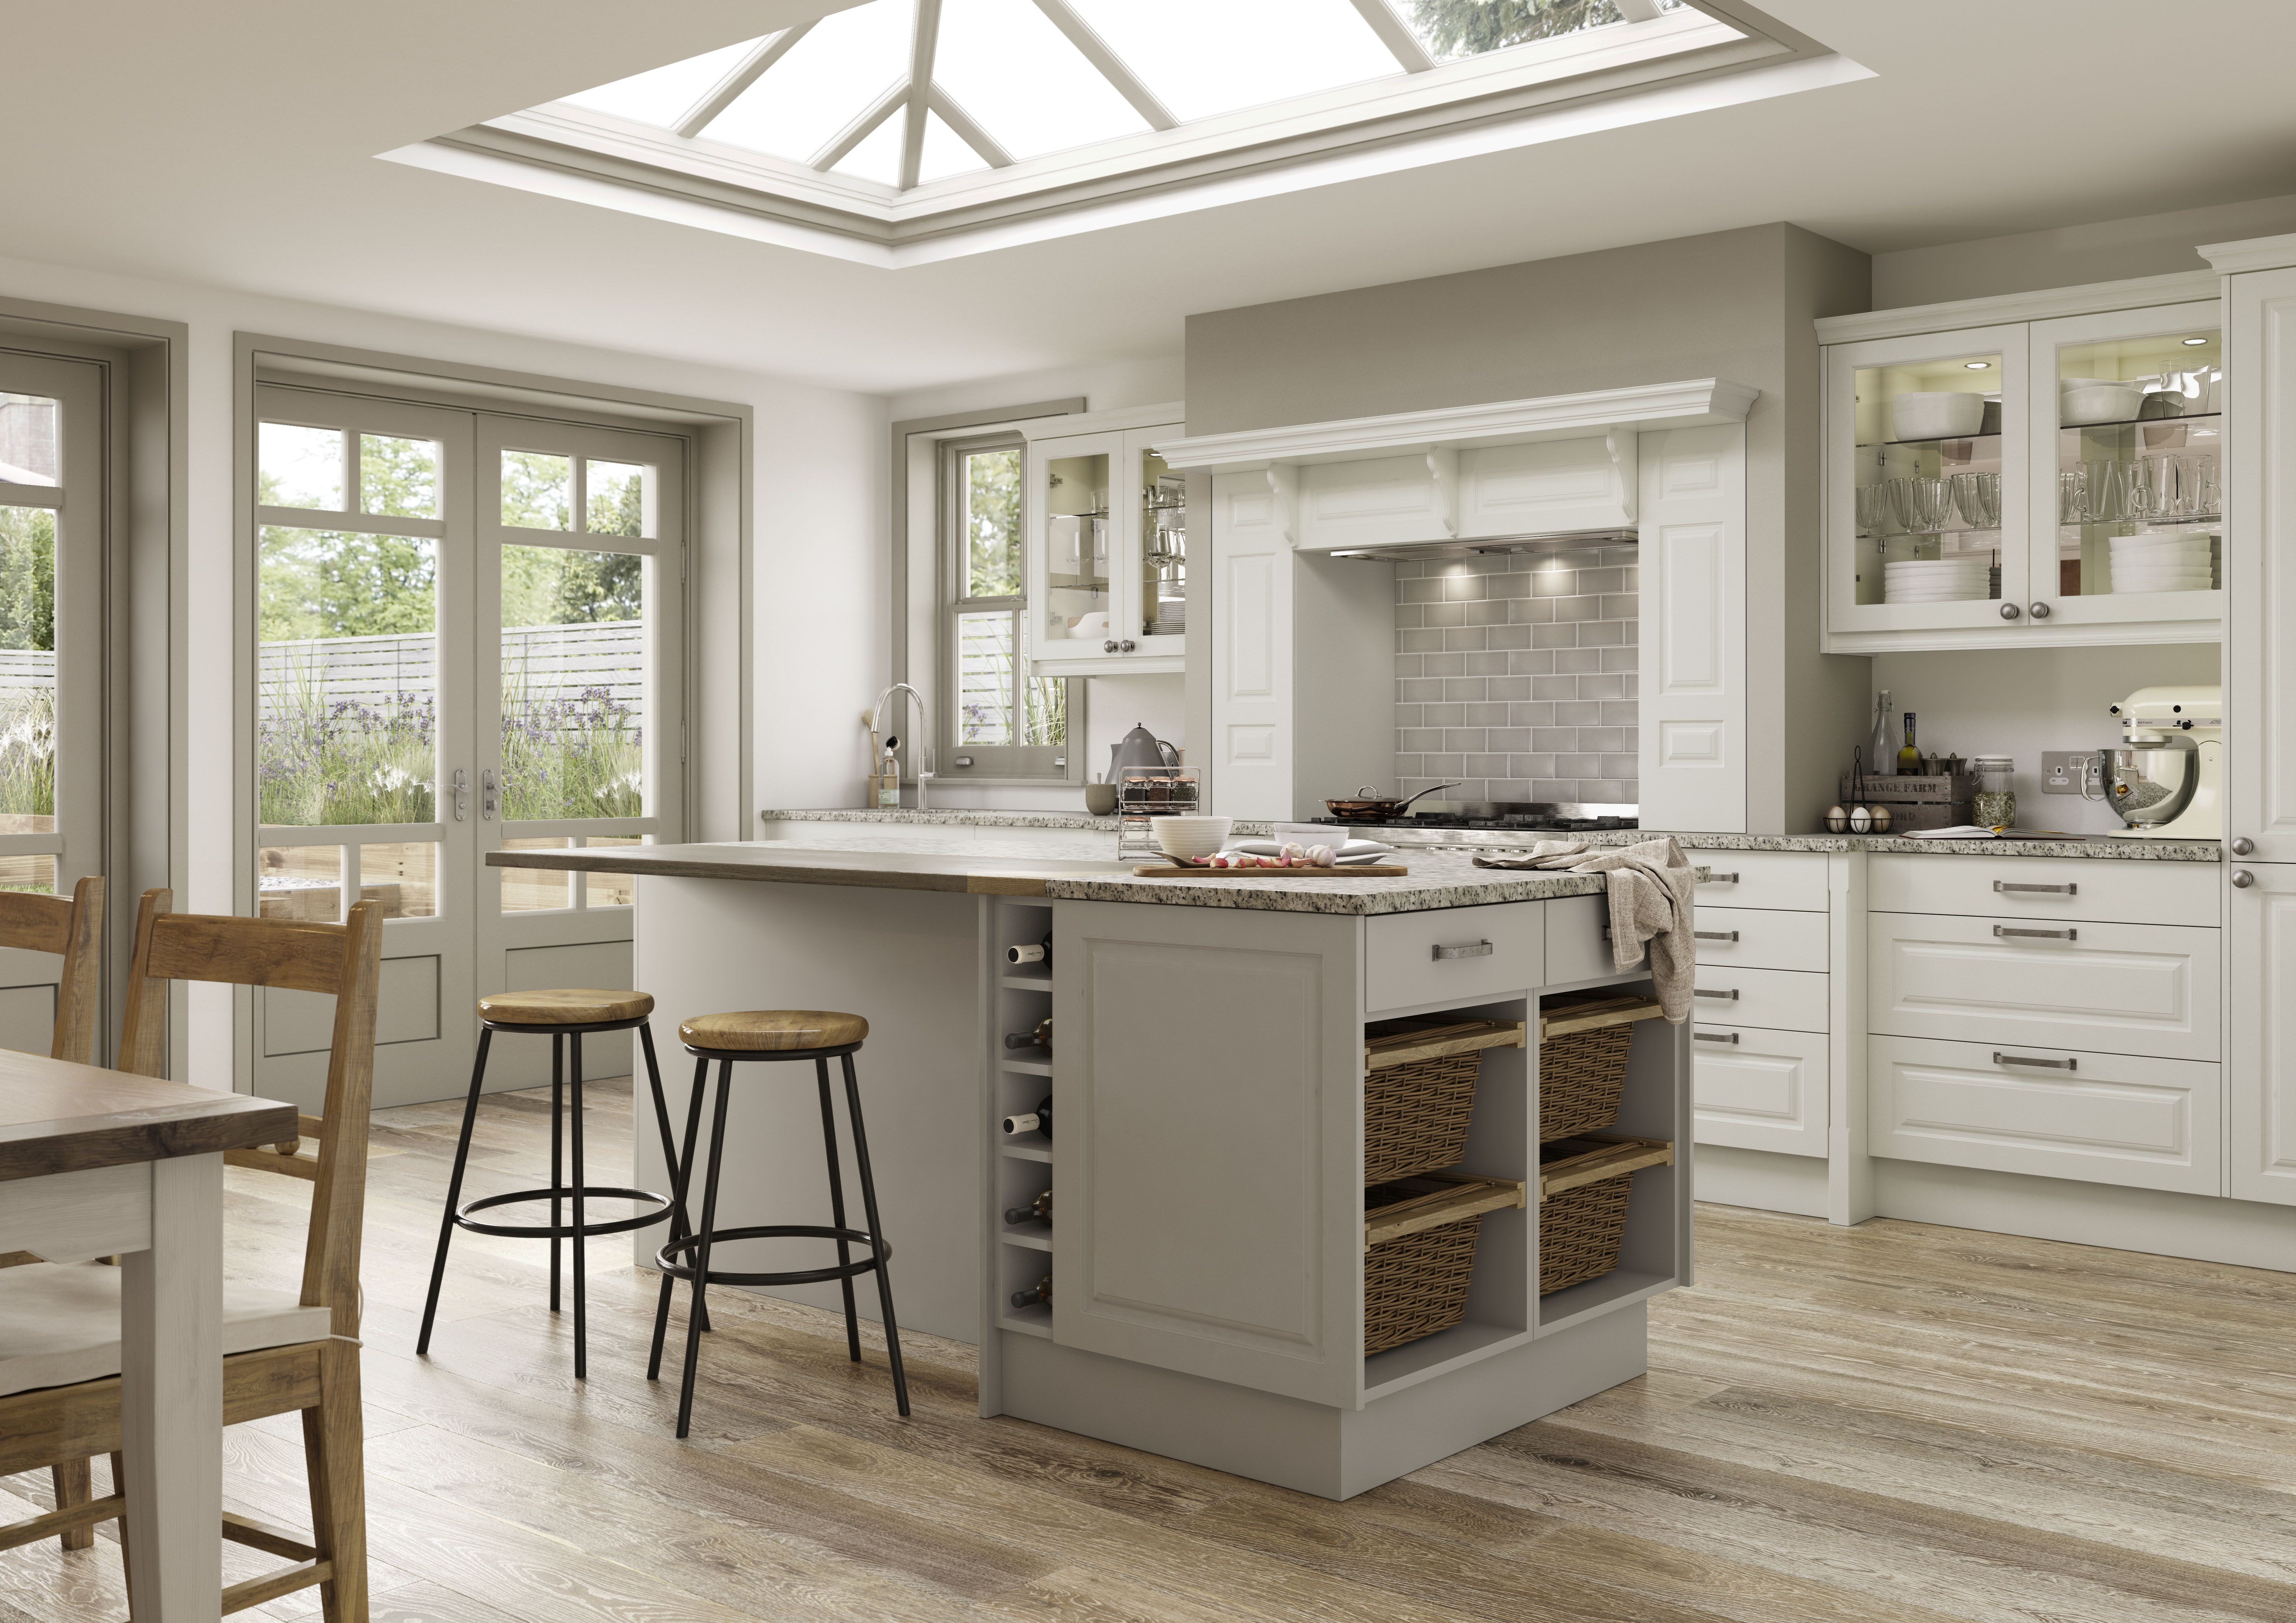 Mereway Kitchens Town Country Newbury Cashmere And Ivory Clutter Free And Light Helping You A Traditional Kitchen Inspiration Kitchen Inspirations Kitchen